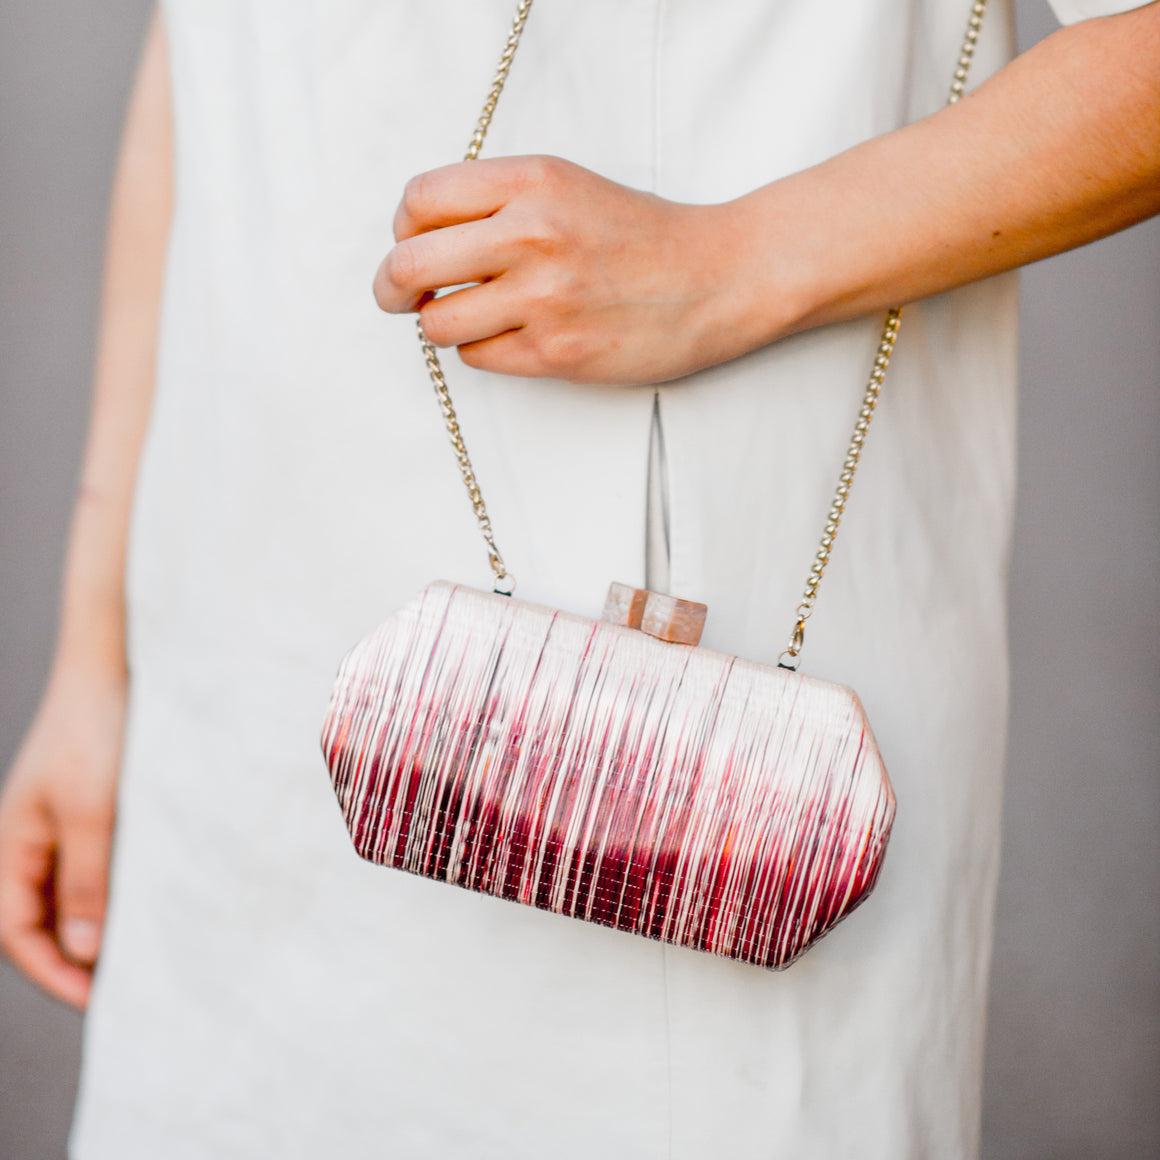 Wine Colored Clutch - Woven Clutch Purse | LIKHÂ